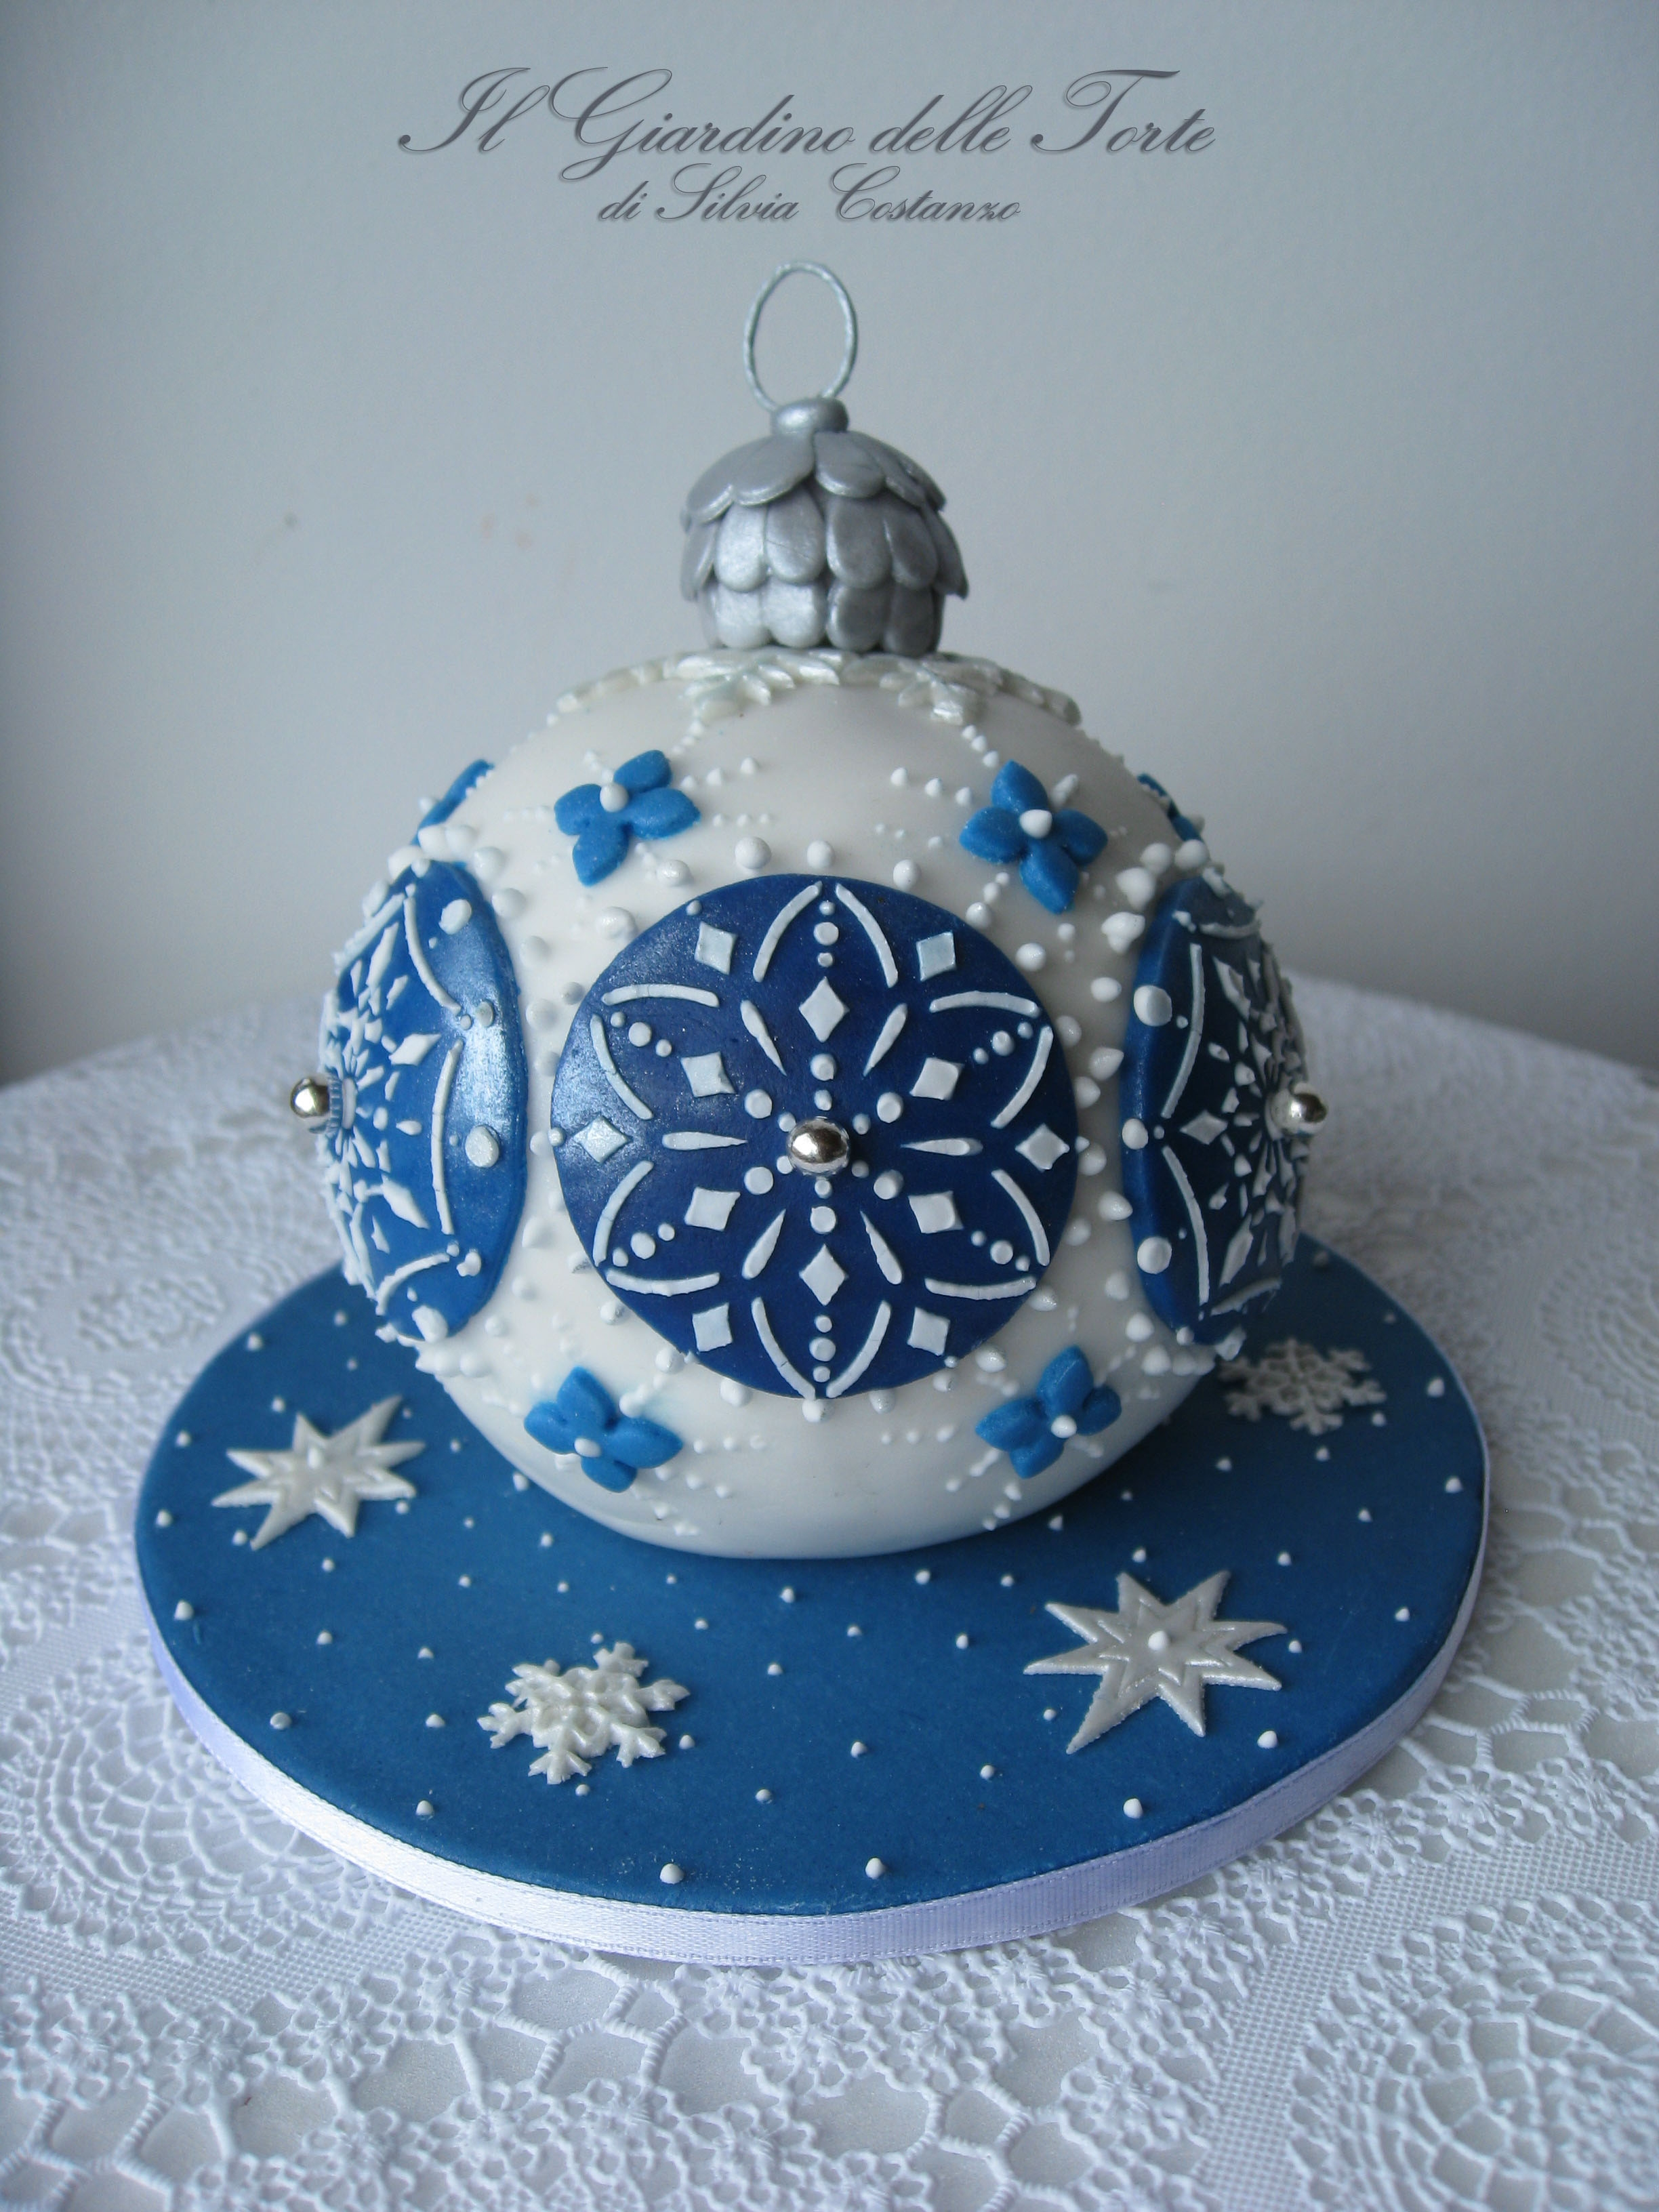 Christmas Bauble Cake Images : Christmas Bauble Cake - CakeCentral.com